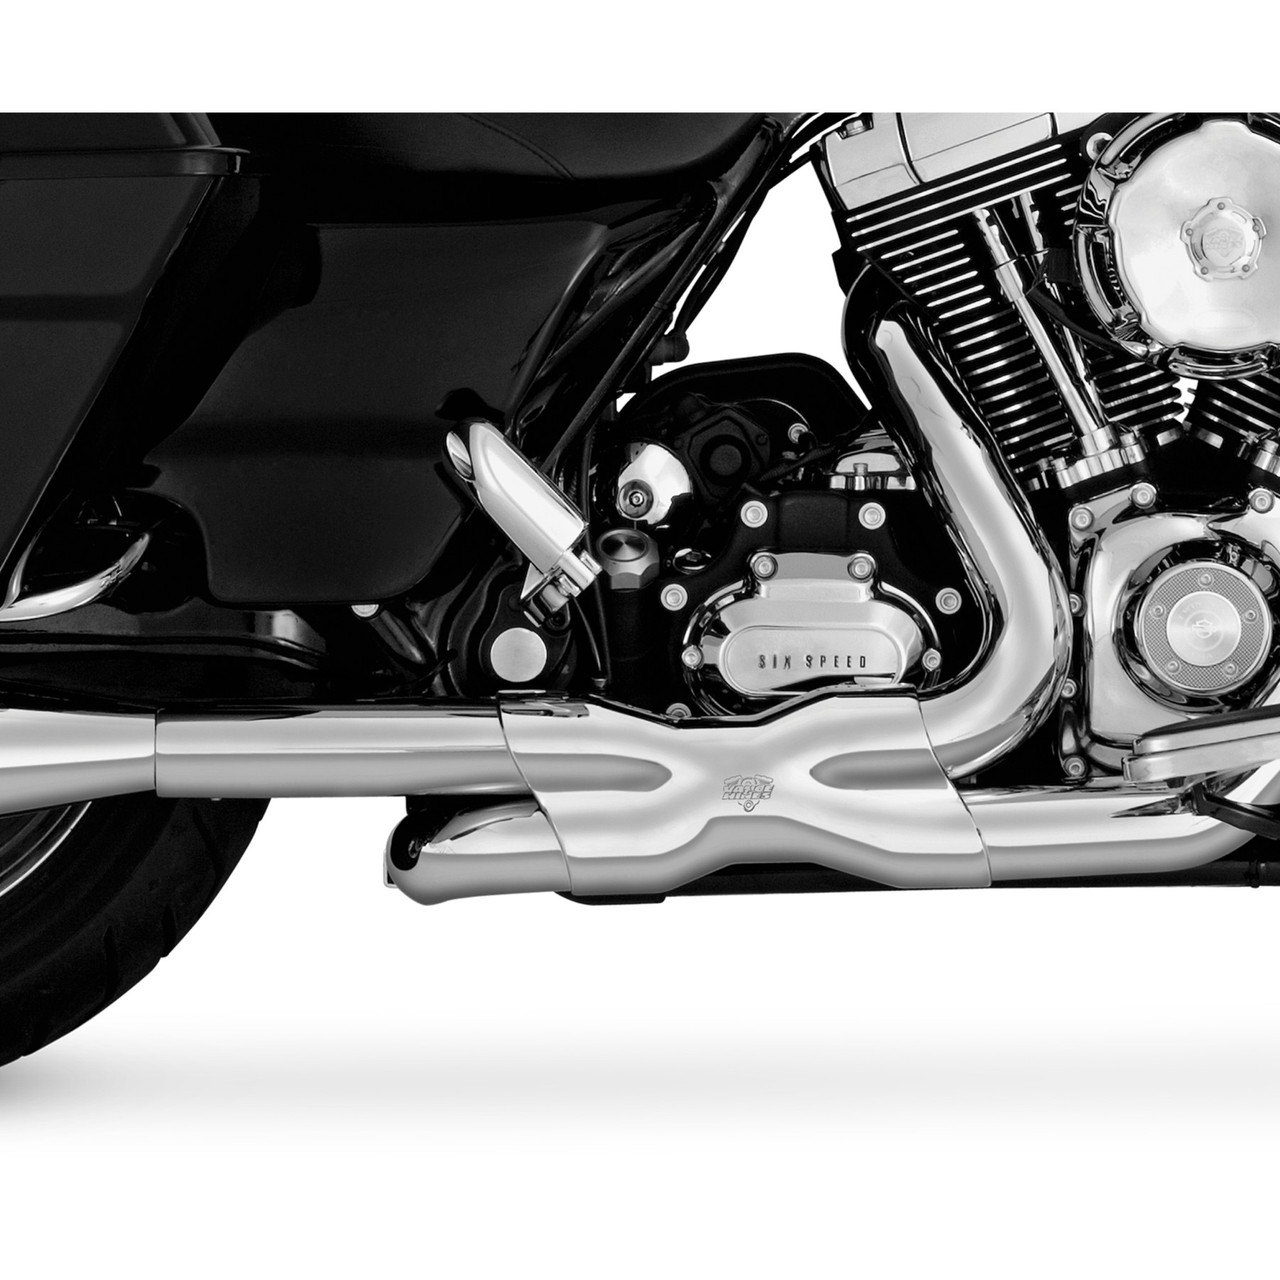 46752 Vance and Hines Dresser Duals Header Pipe for Harley Davidson 2009-2016 Touring